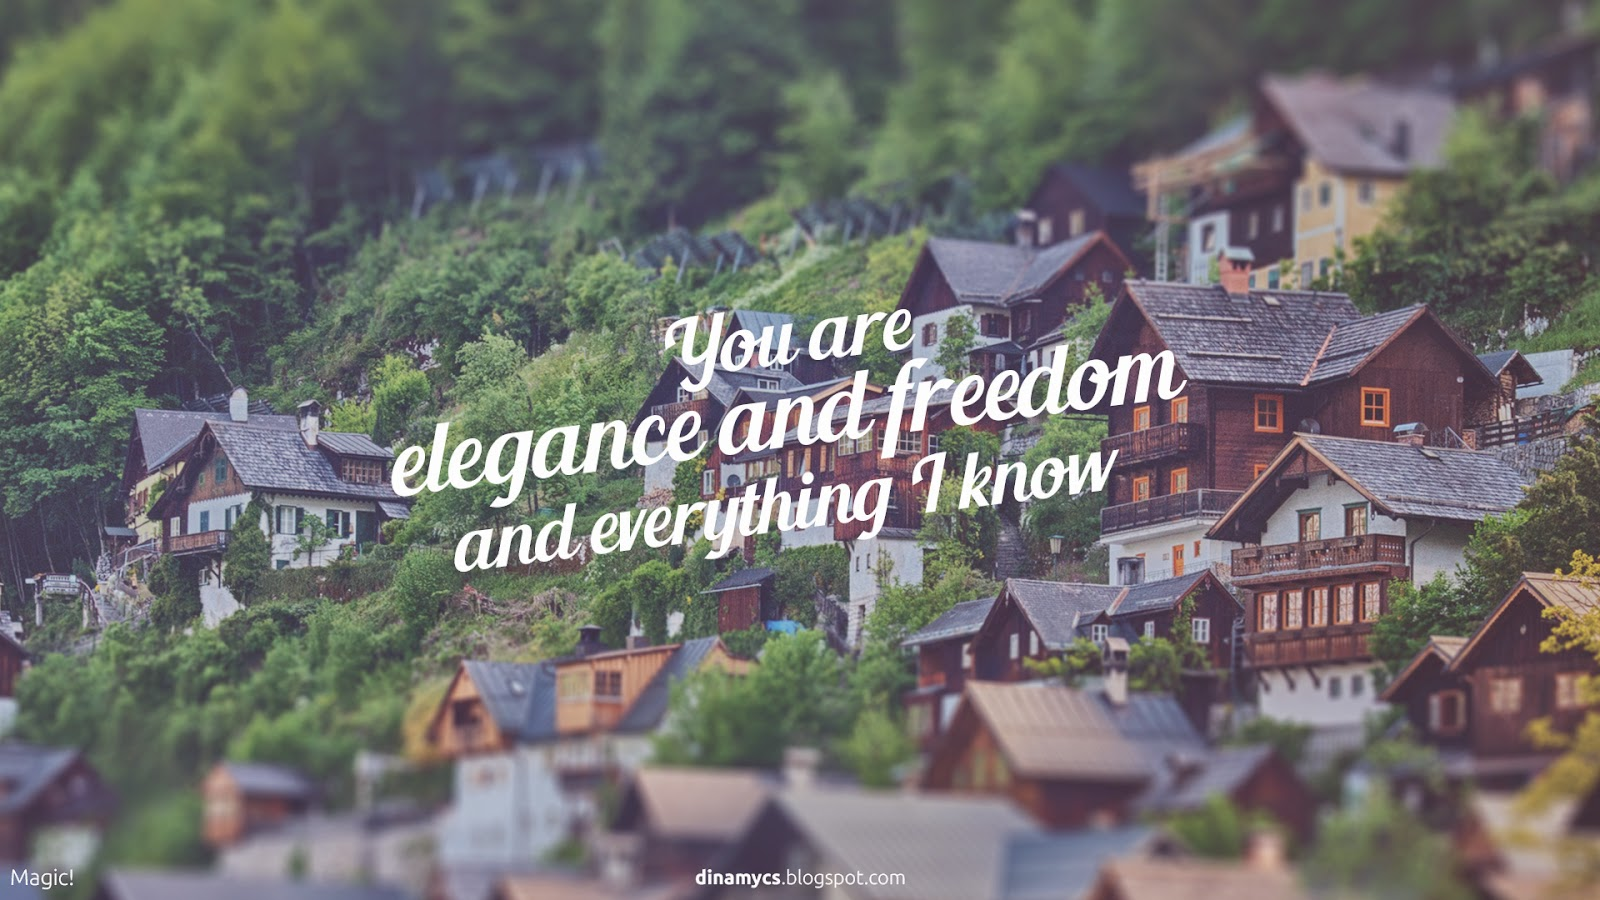 You are elegance and freedom and everything I know